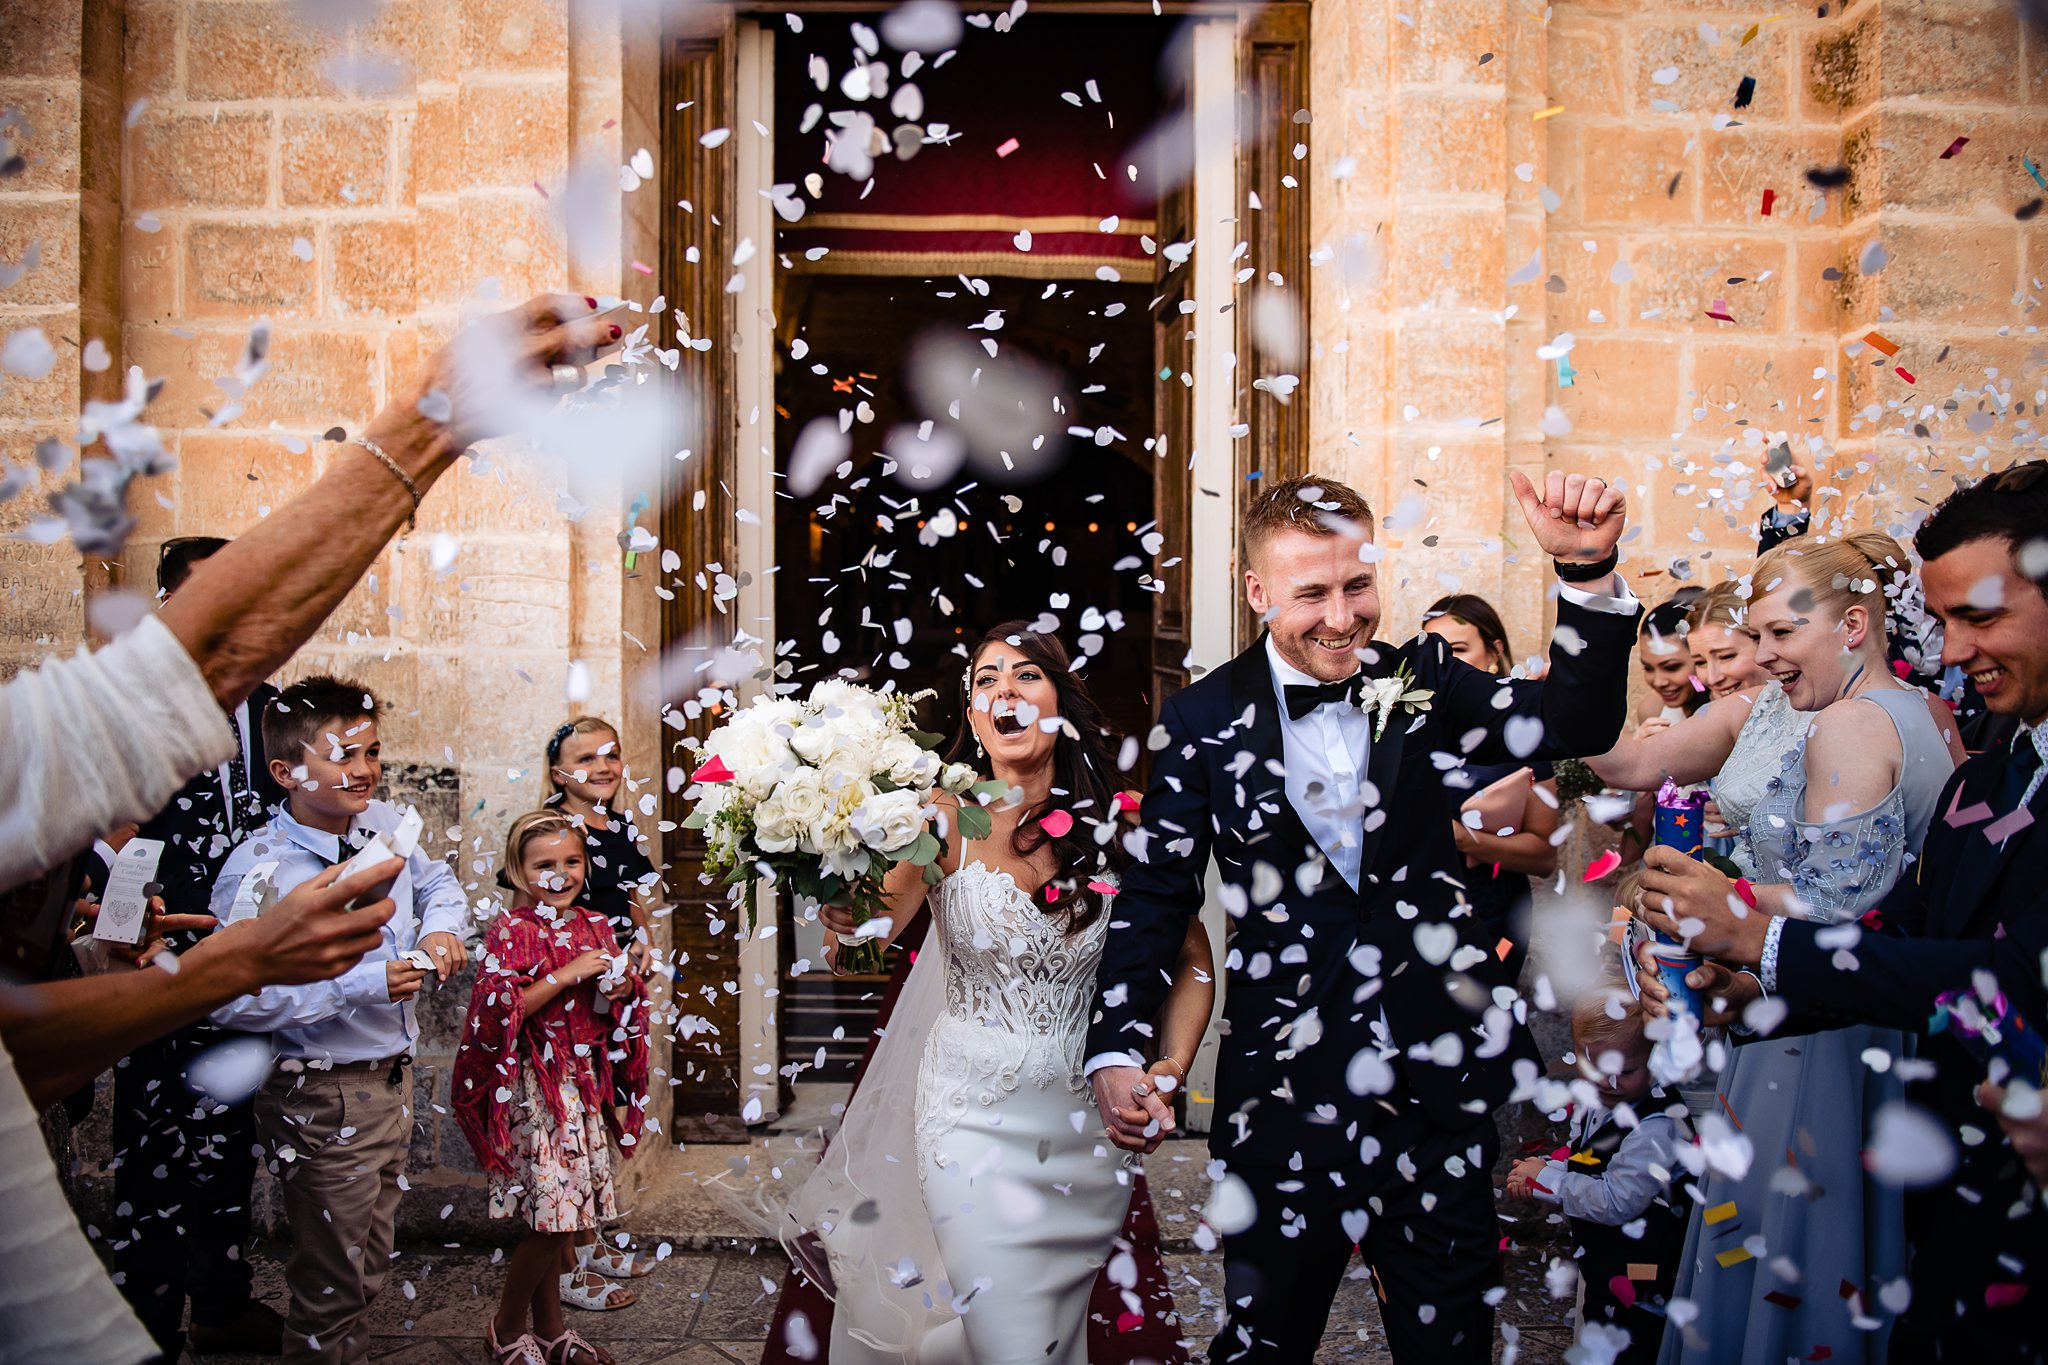 bride and groom exiting the church surrounded by flower petals and friends- photo by Shane P Watts Photography